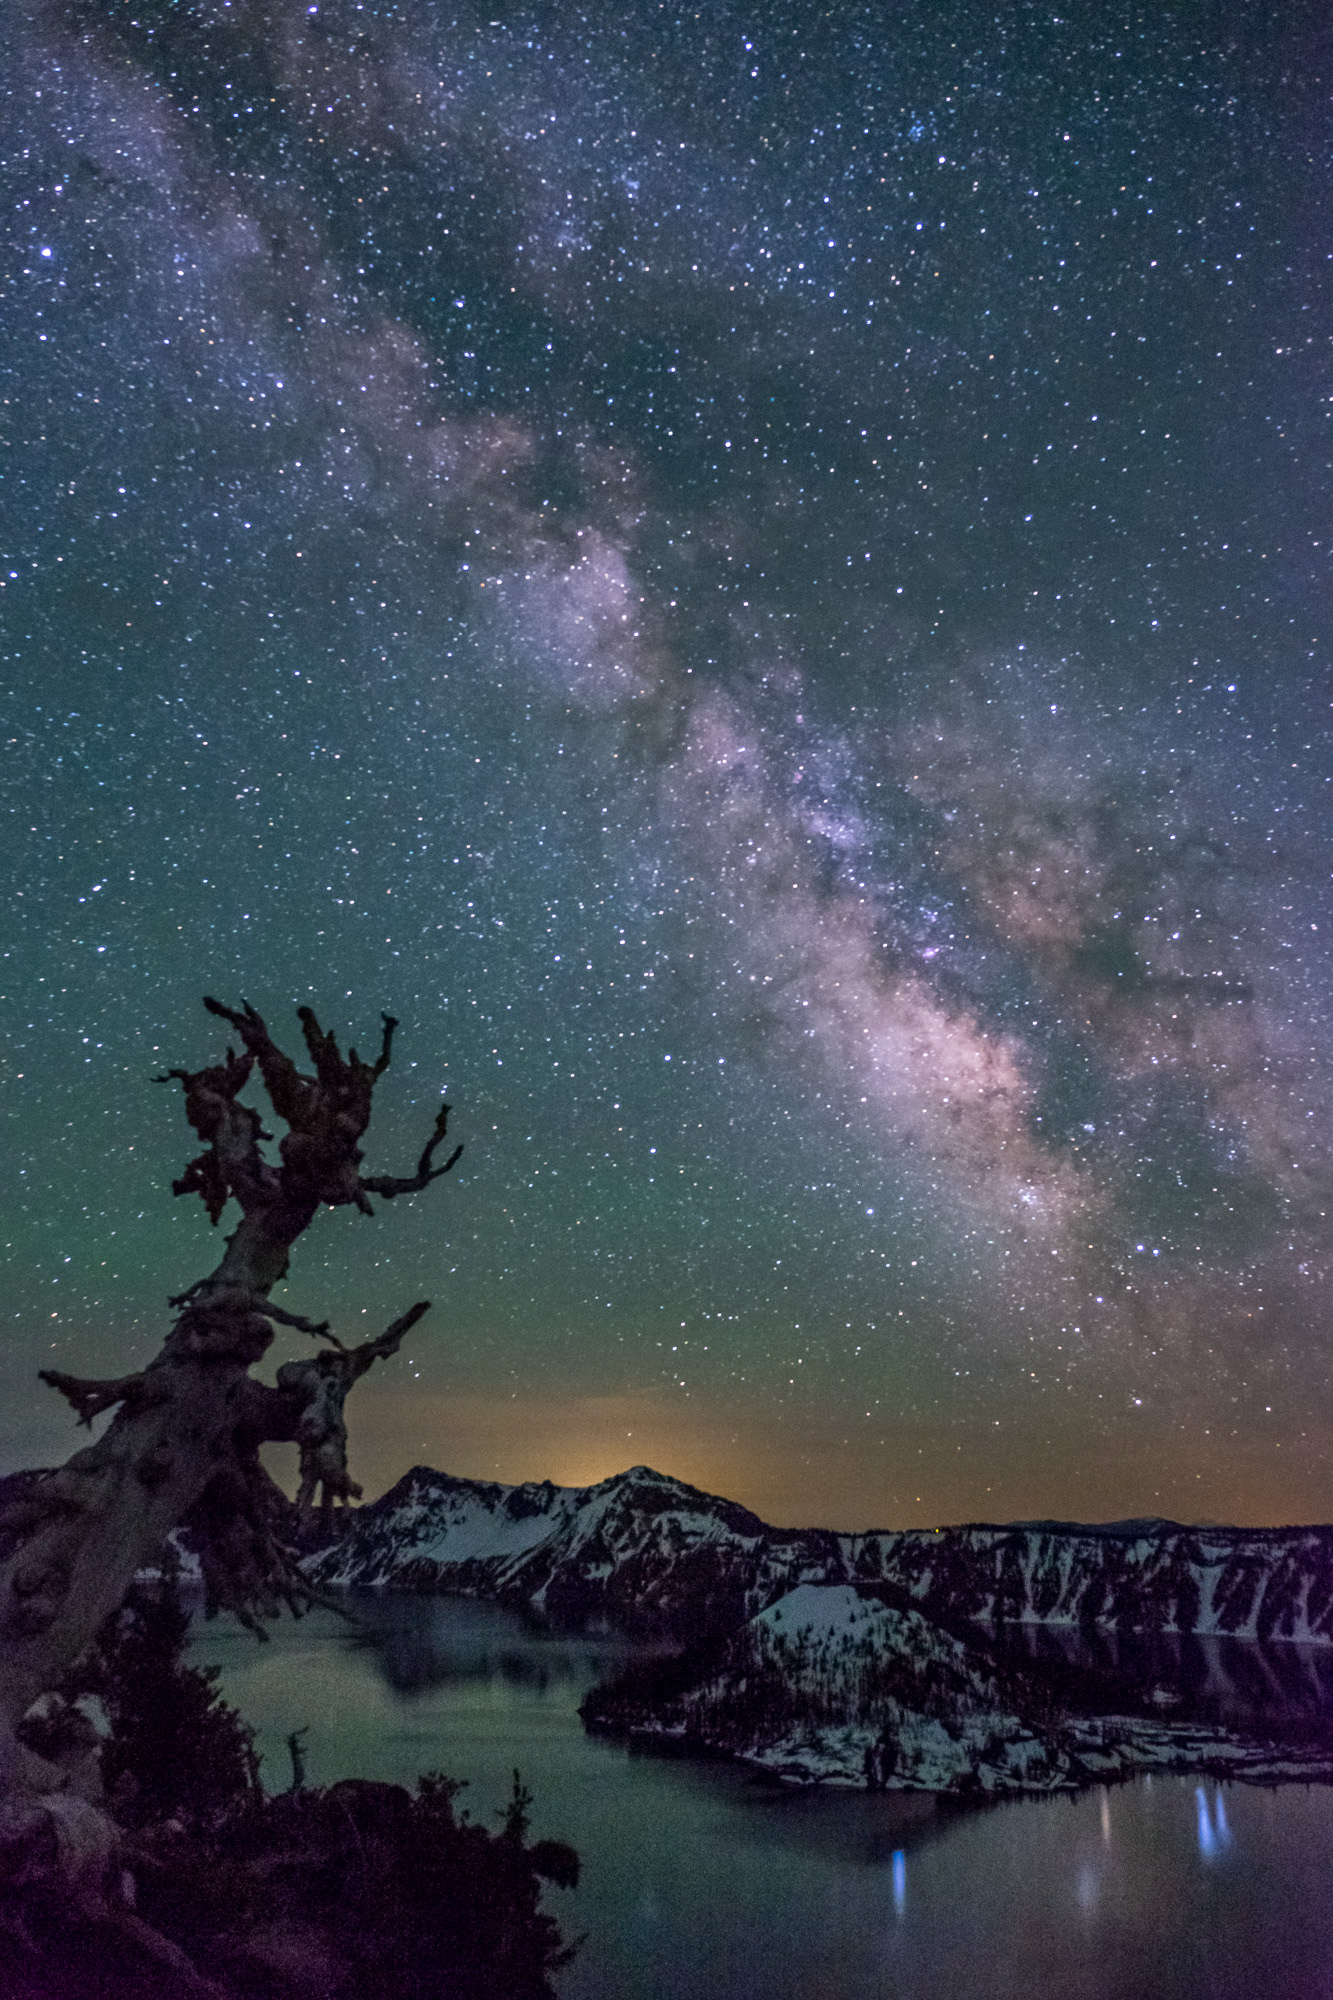 The night skies are incredible in Crater Lake.